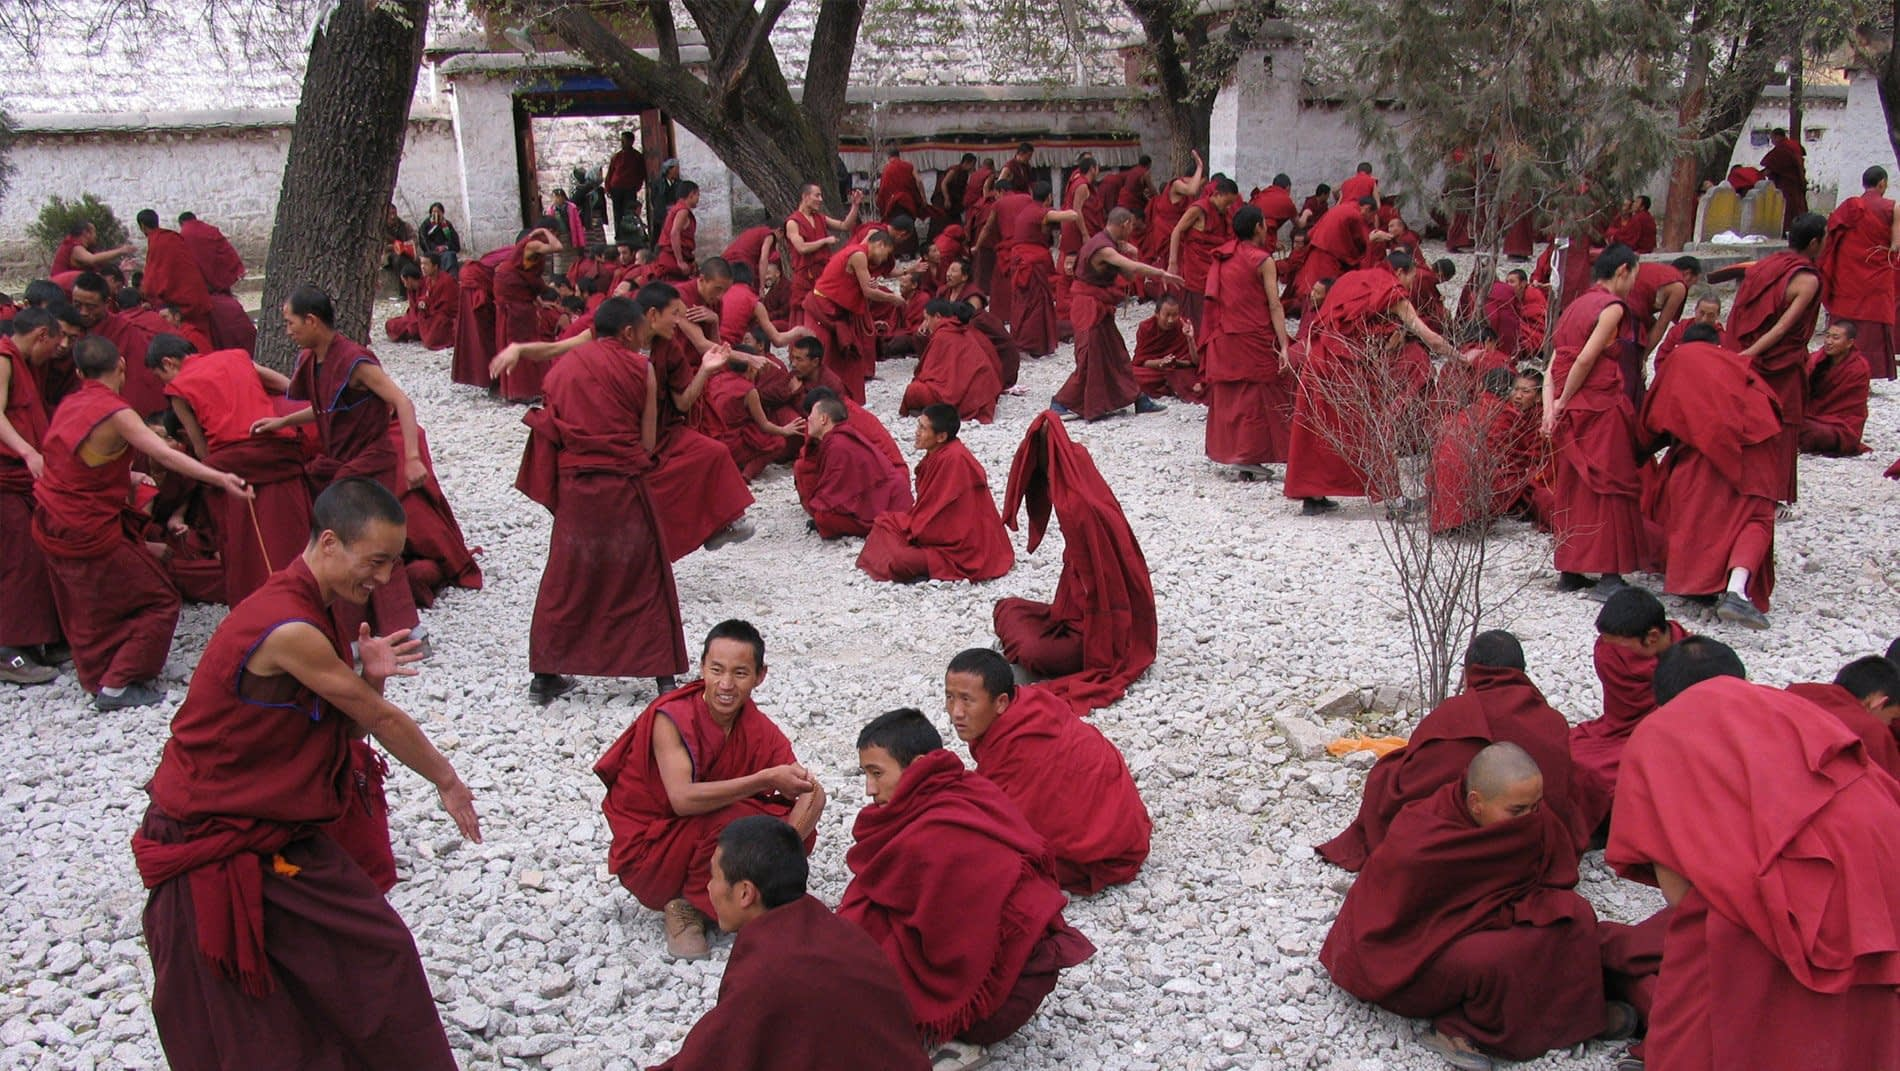 Monastic Debate~Young Buddhist monks of the Gelug sect have developed unusual techniques to practice their debating skills.